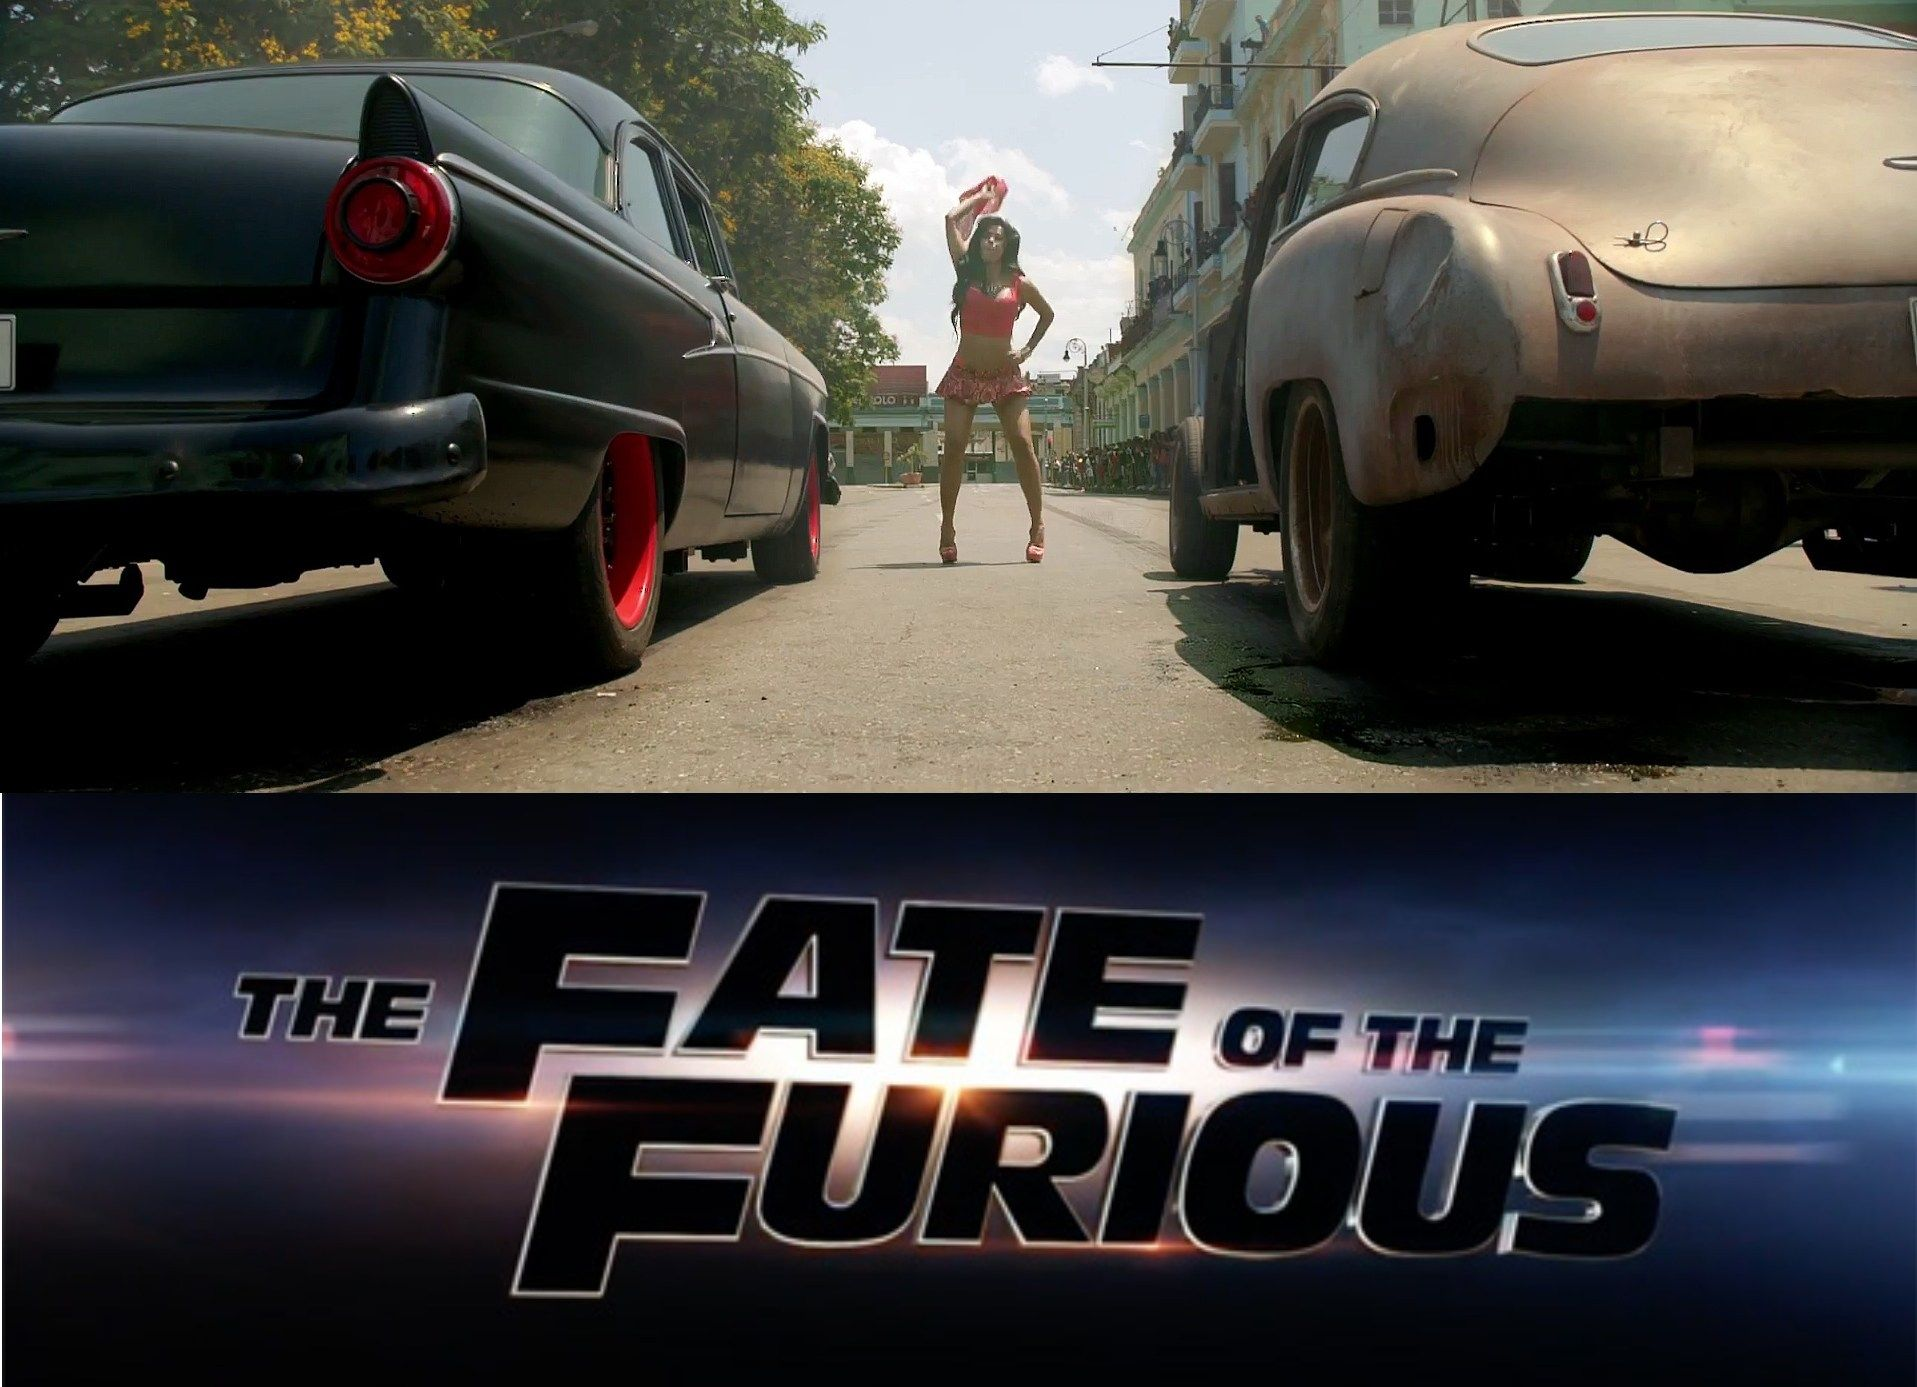 Pin By Austin On The Fate Of The Furious 2017 Movies Fate Of The Furious Furious Movie